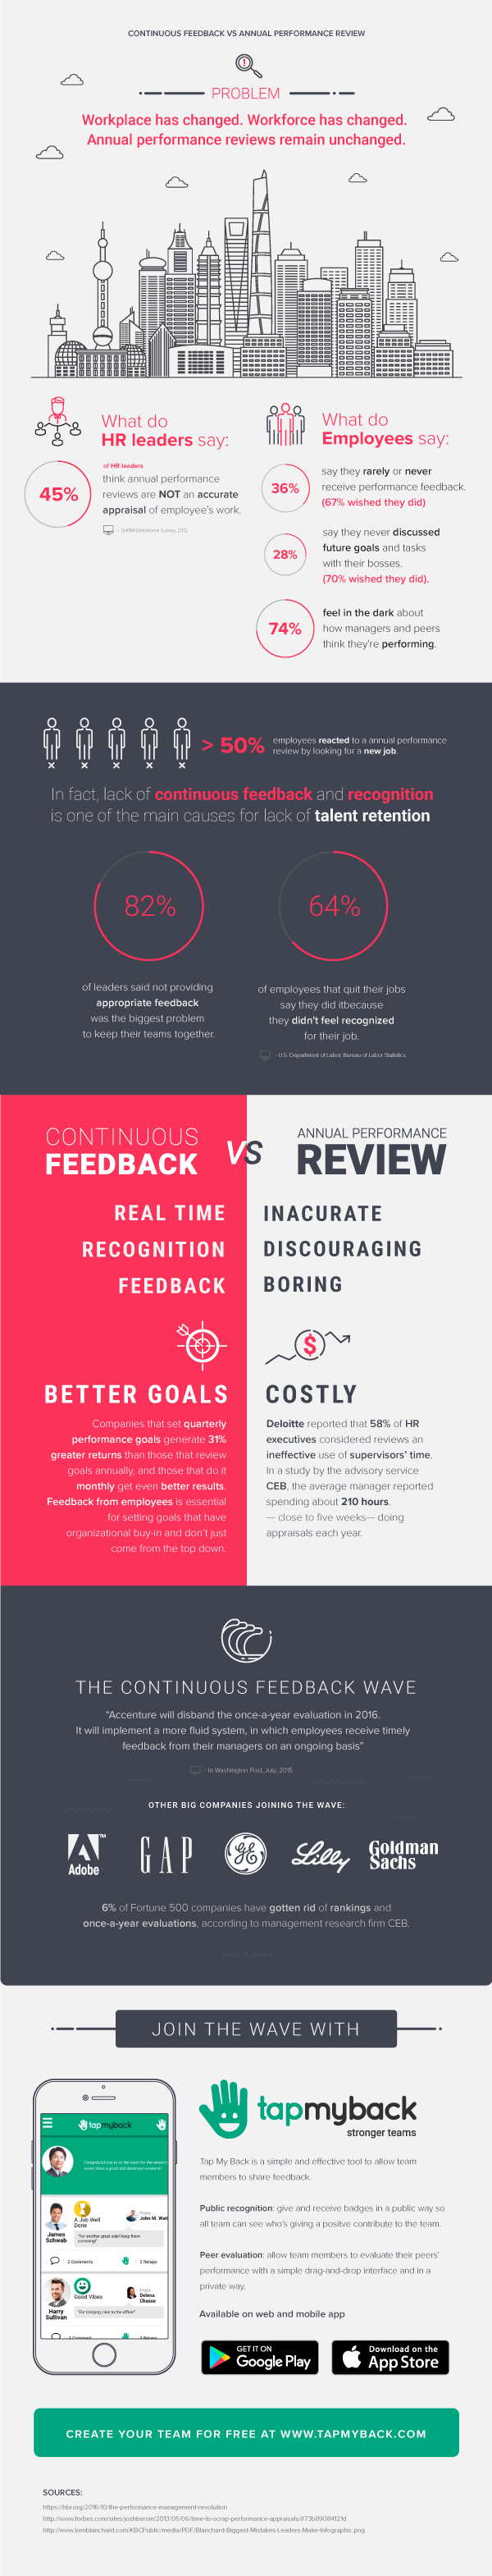 Annual Performance Reviews Vs Continuous Feedback Infographic